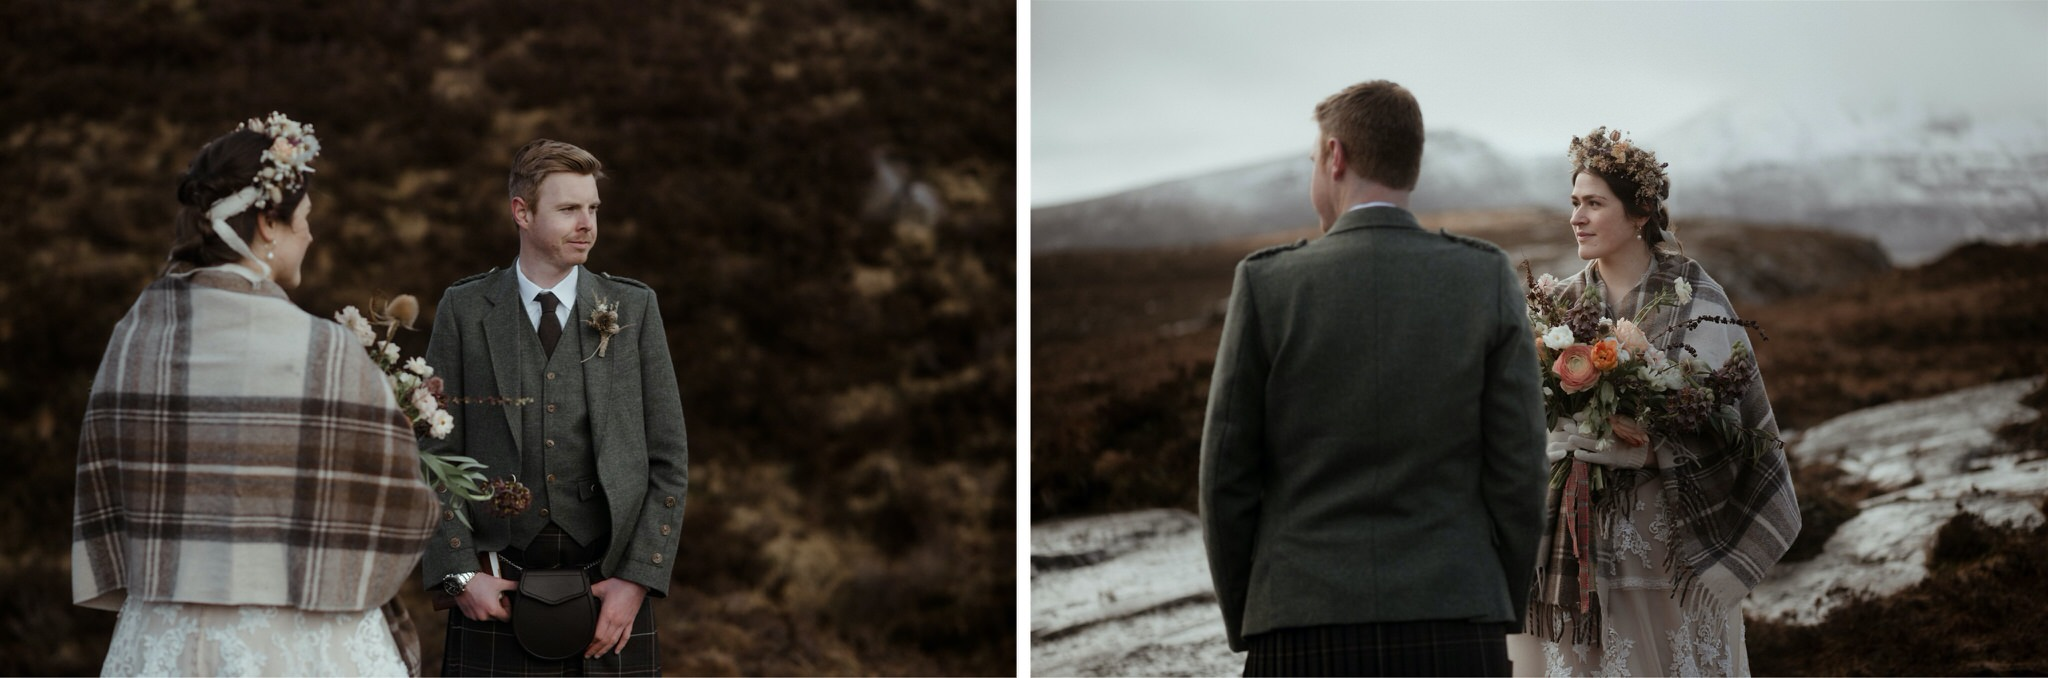 Bride and groom during a Scotland elopement wedding ceremony in Assynt